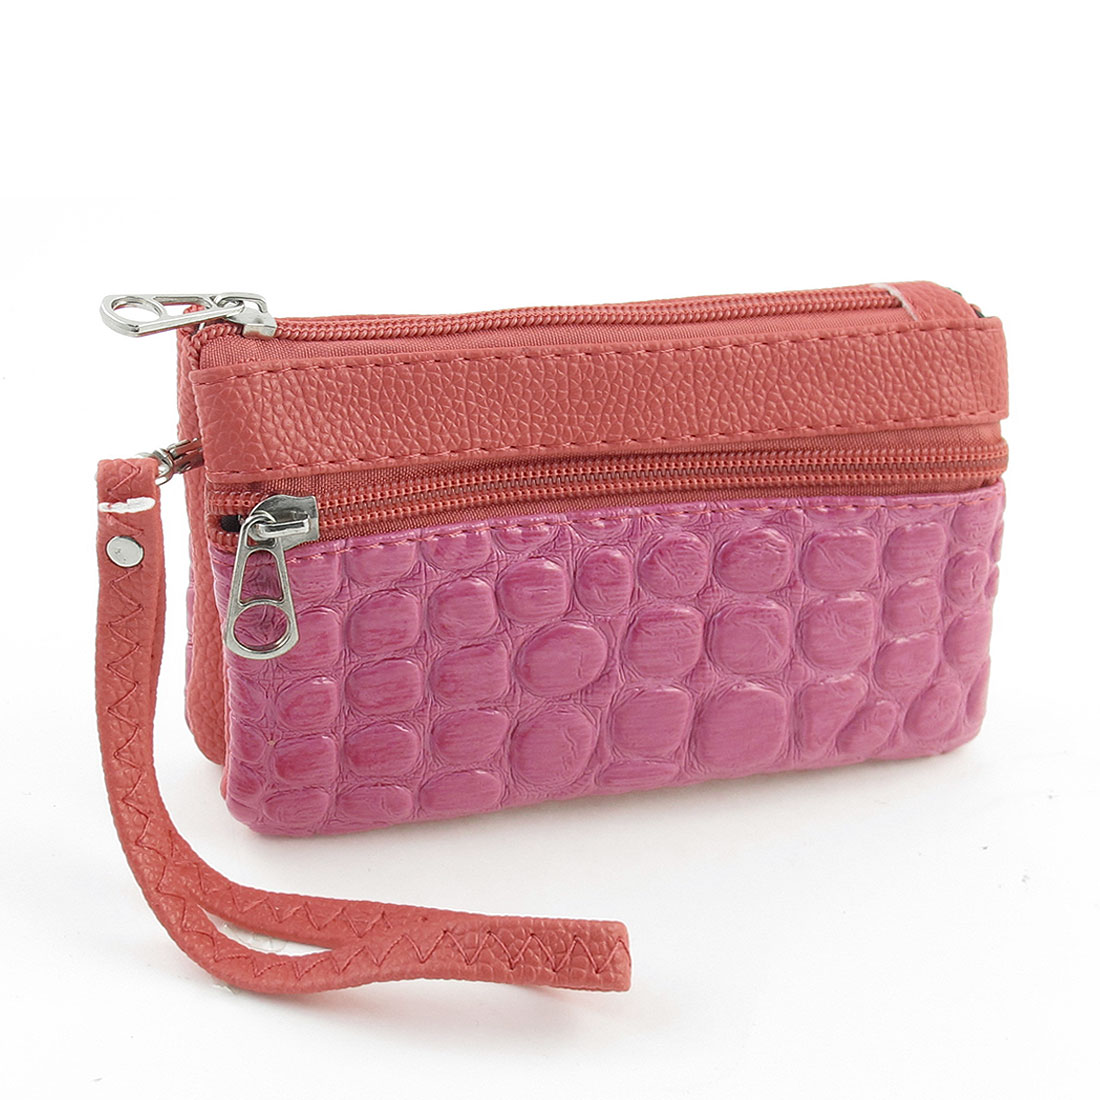 Crocodile Pattern Zipper Closure Faux Leather Purse Bag Fuchsia for Lady